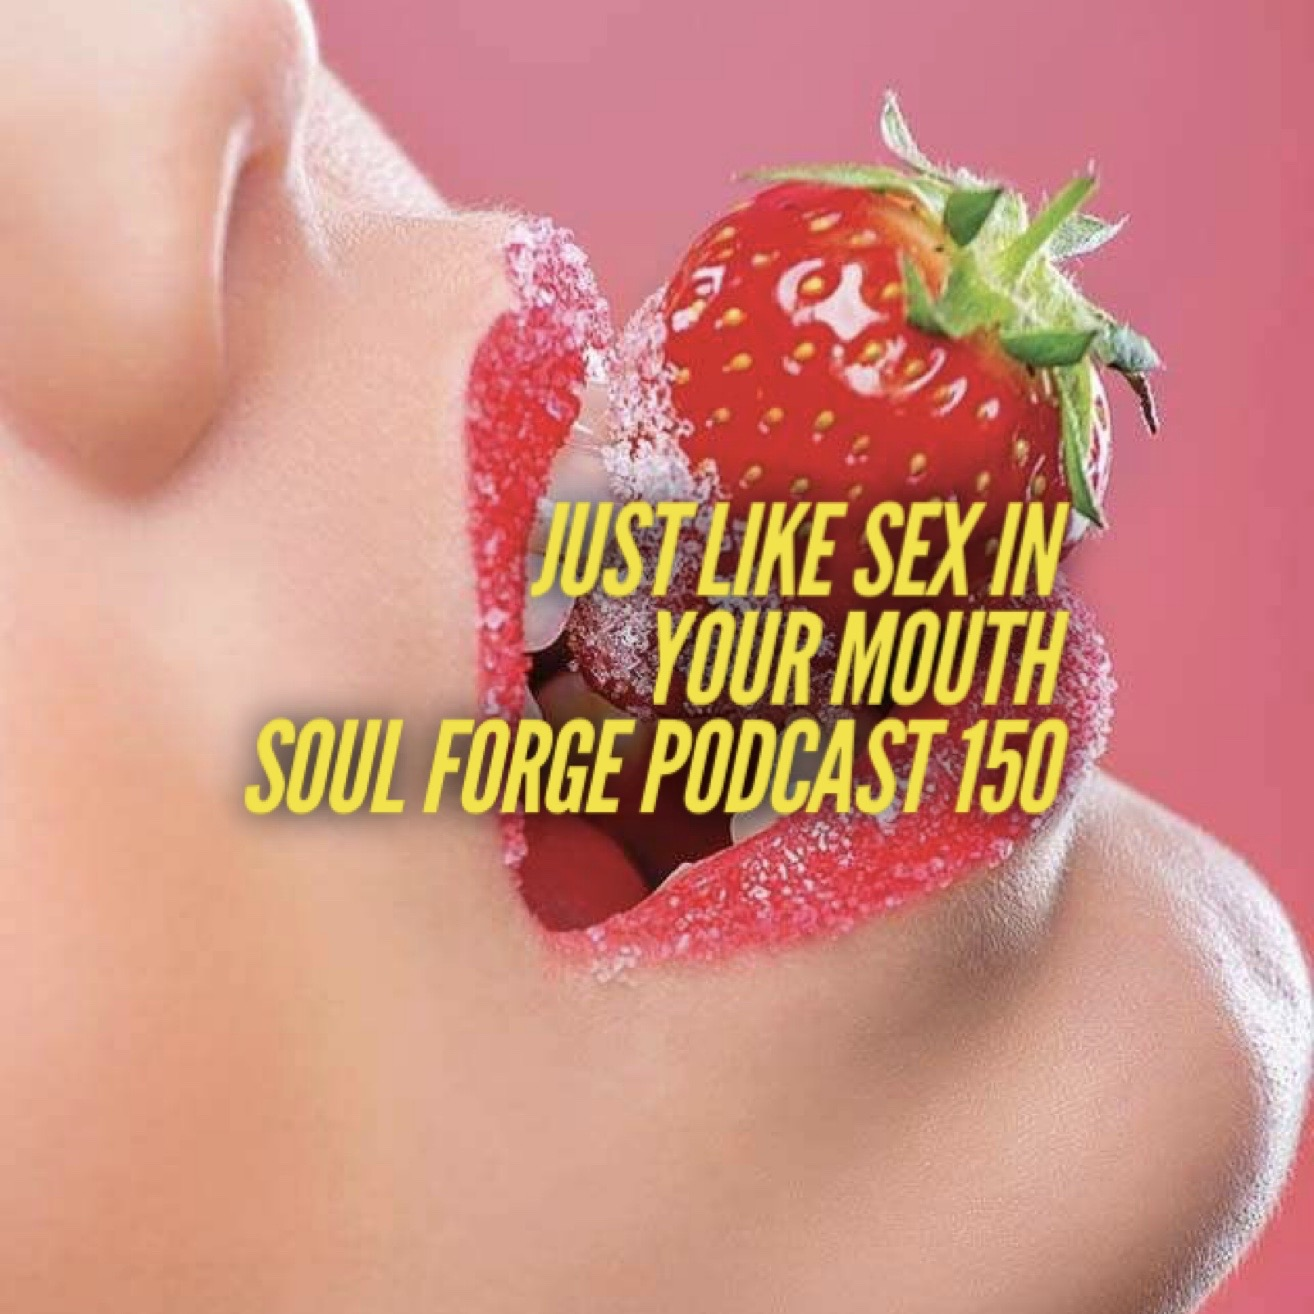 Just Like Sex In Your Mouth - 150